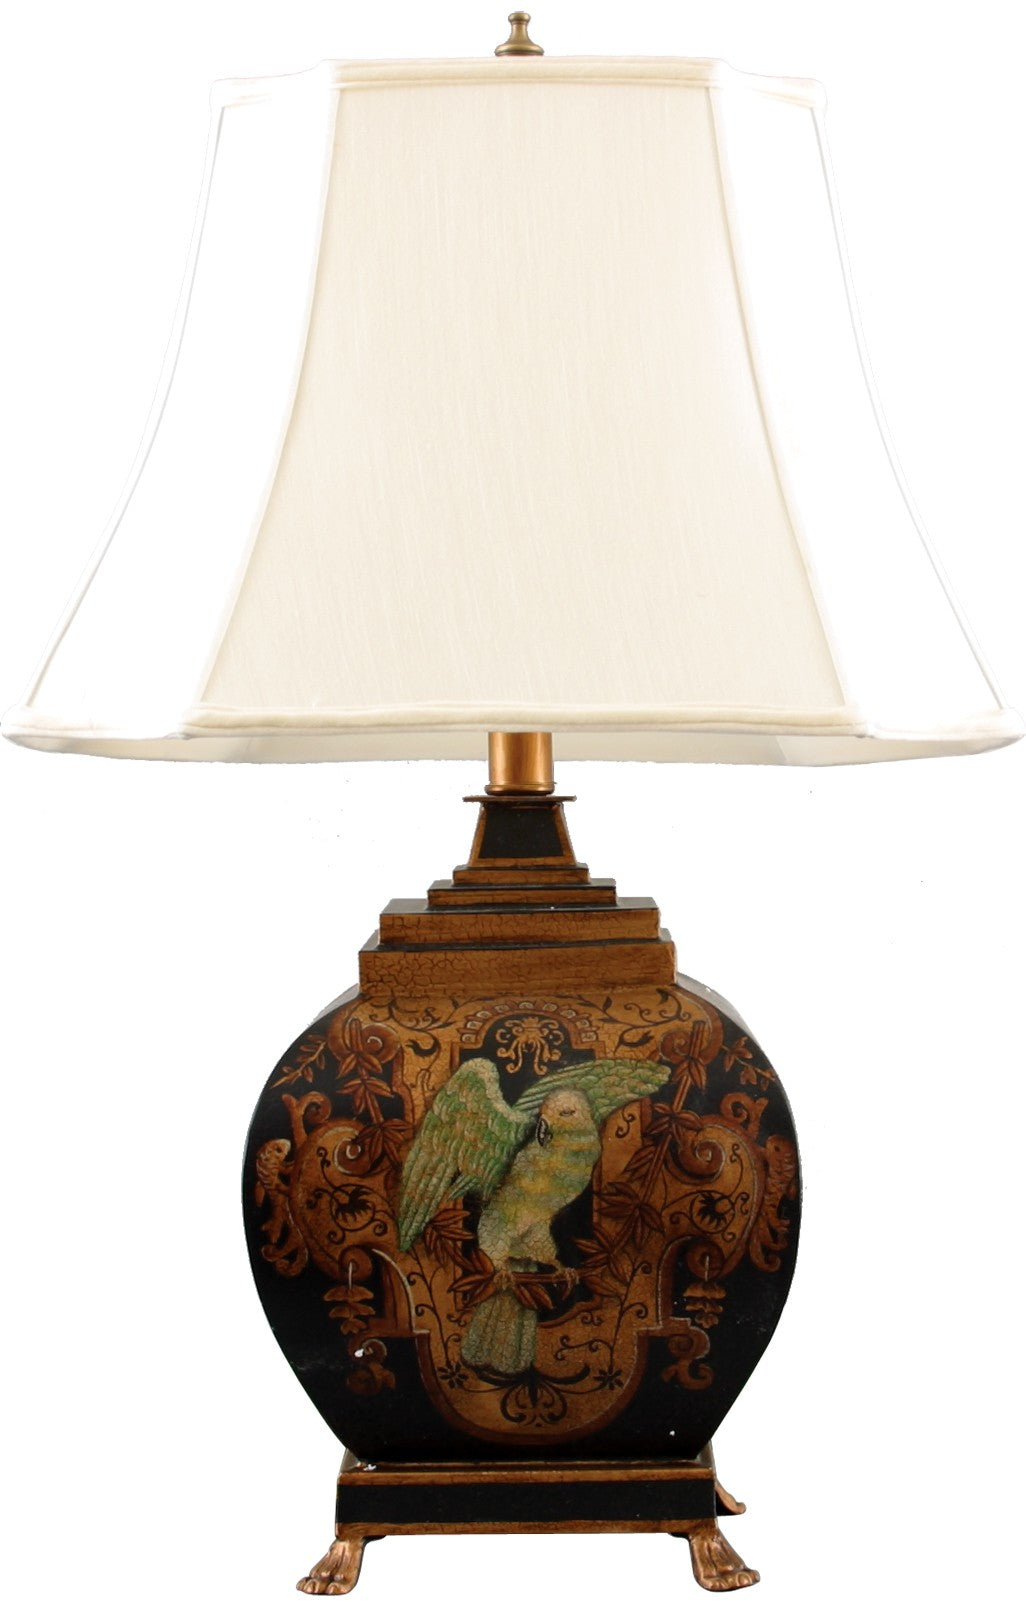 Lovecup Parrot Table Lamp 0351